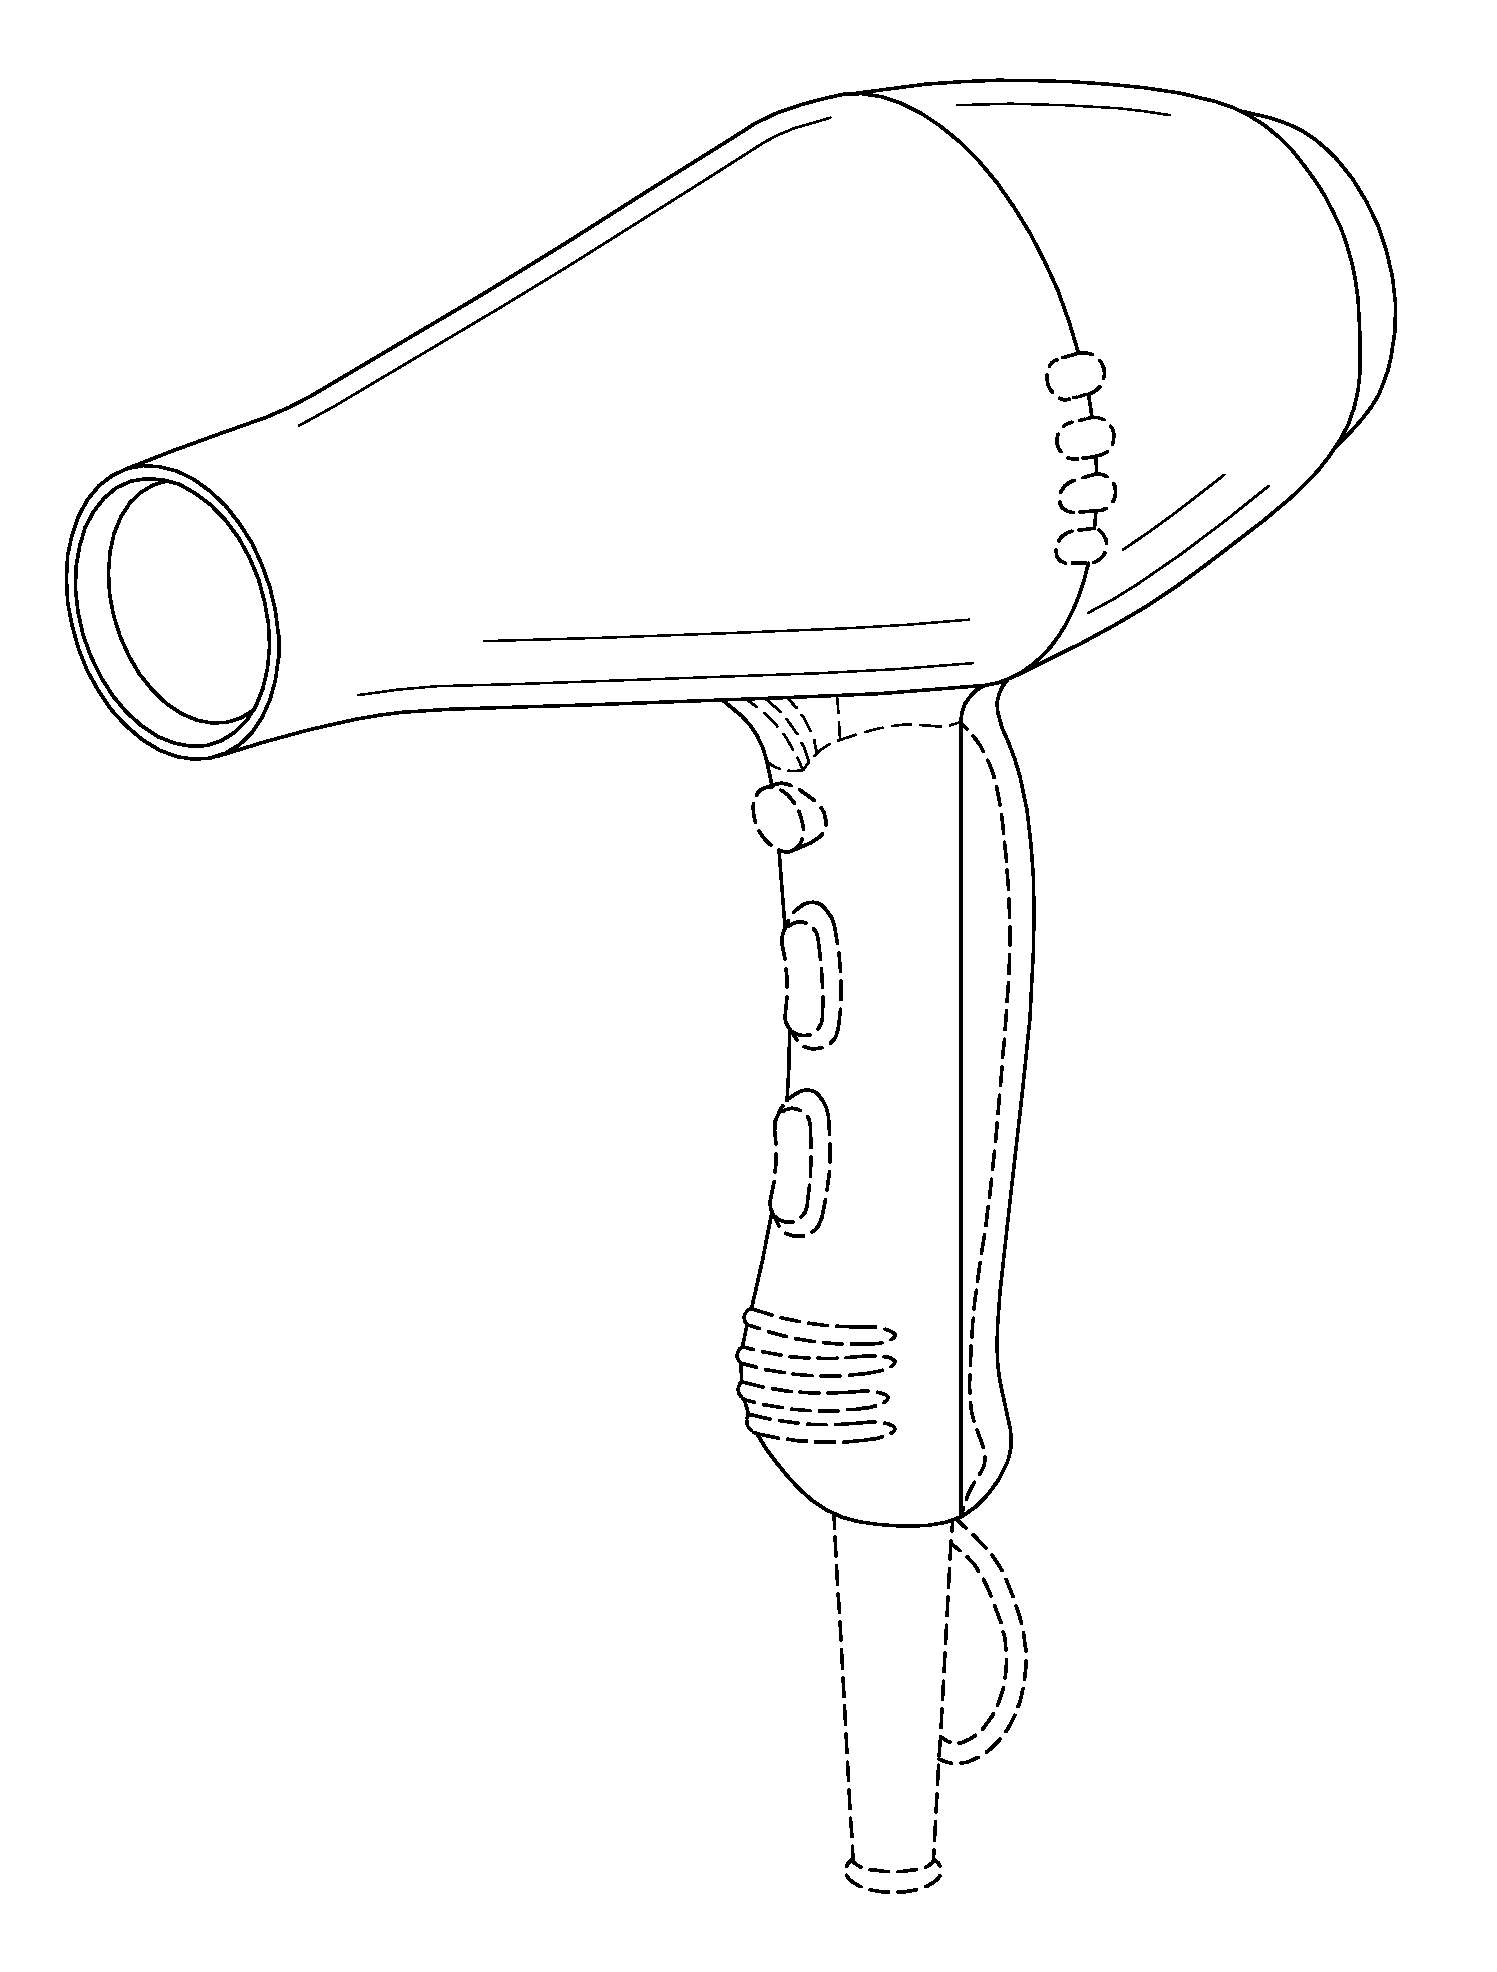 Patent Usd629967 Hair Dryer Google Patents